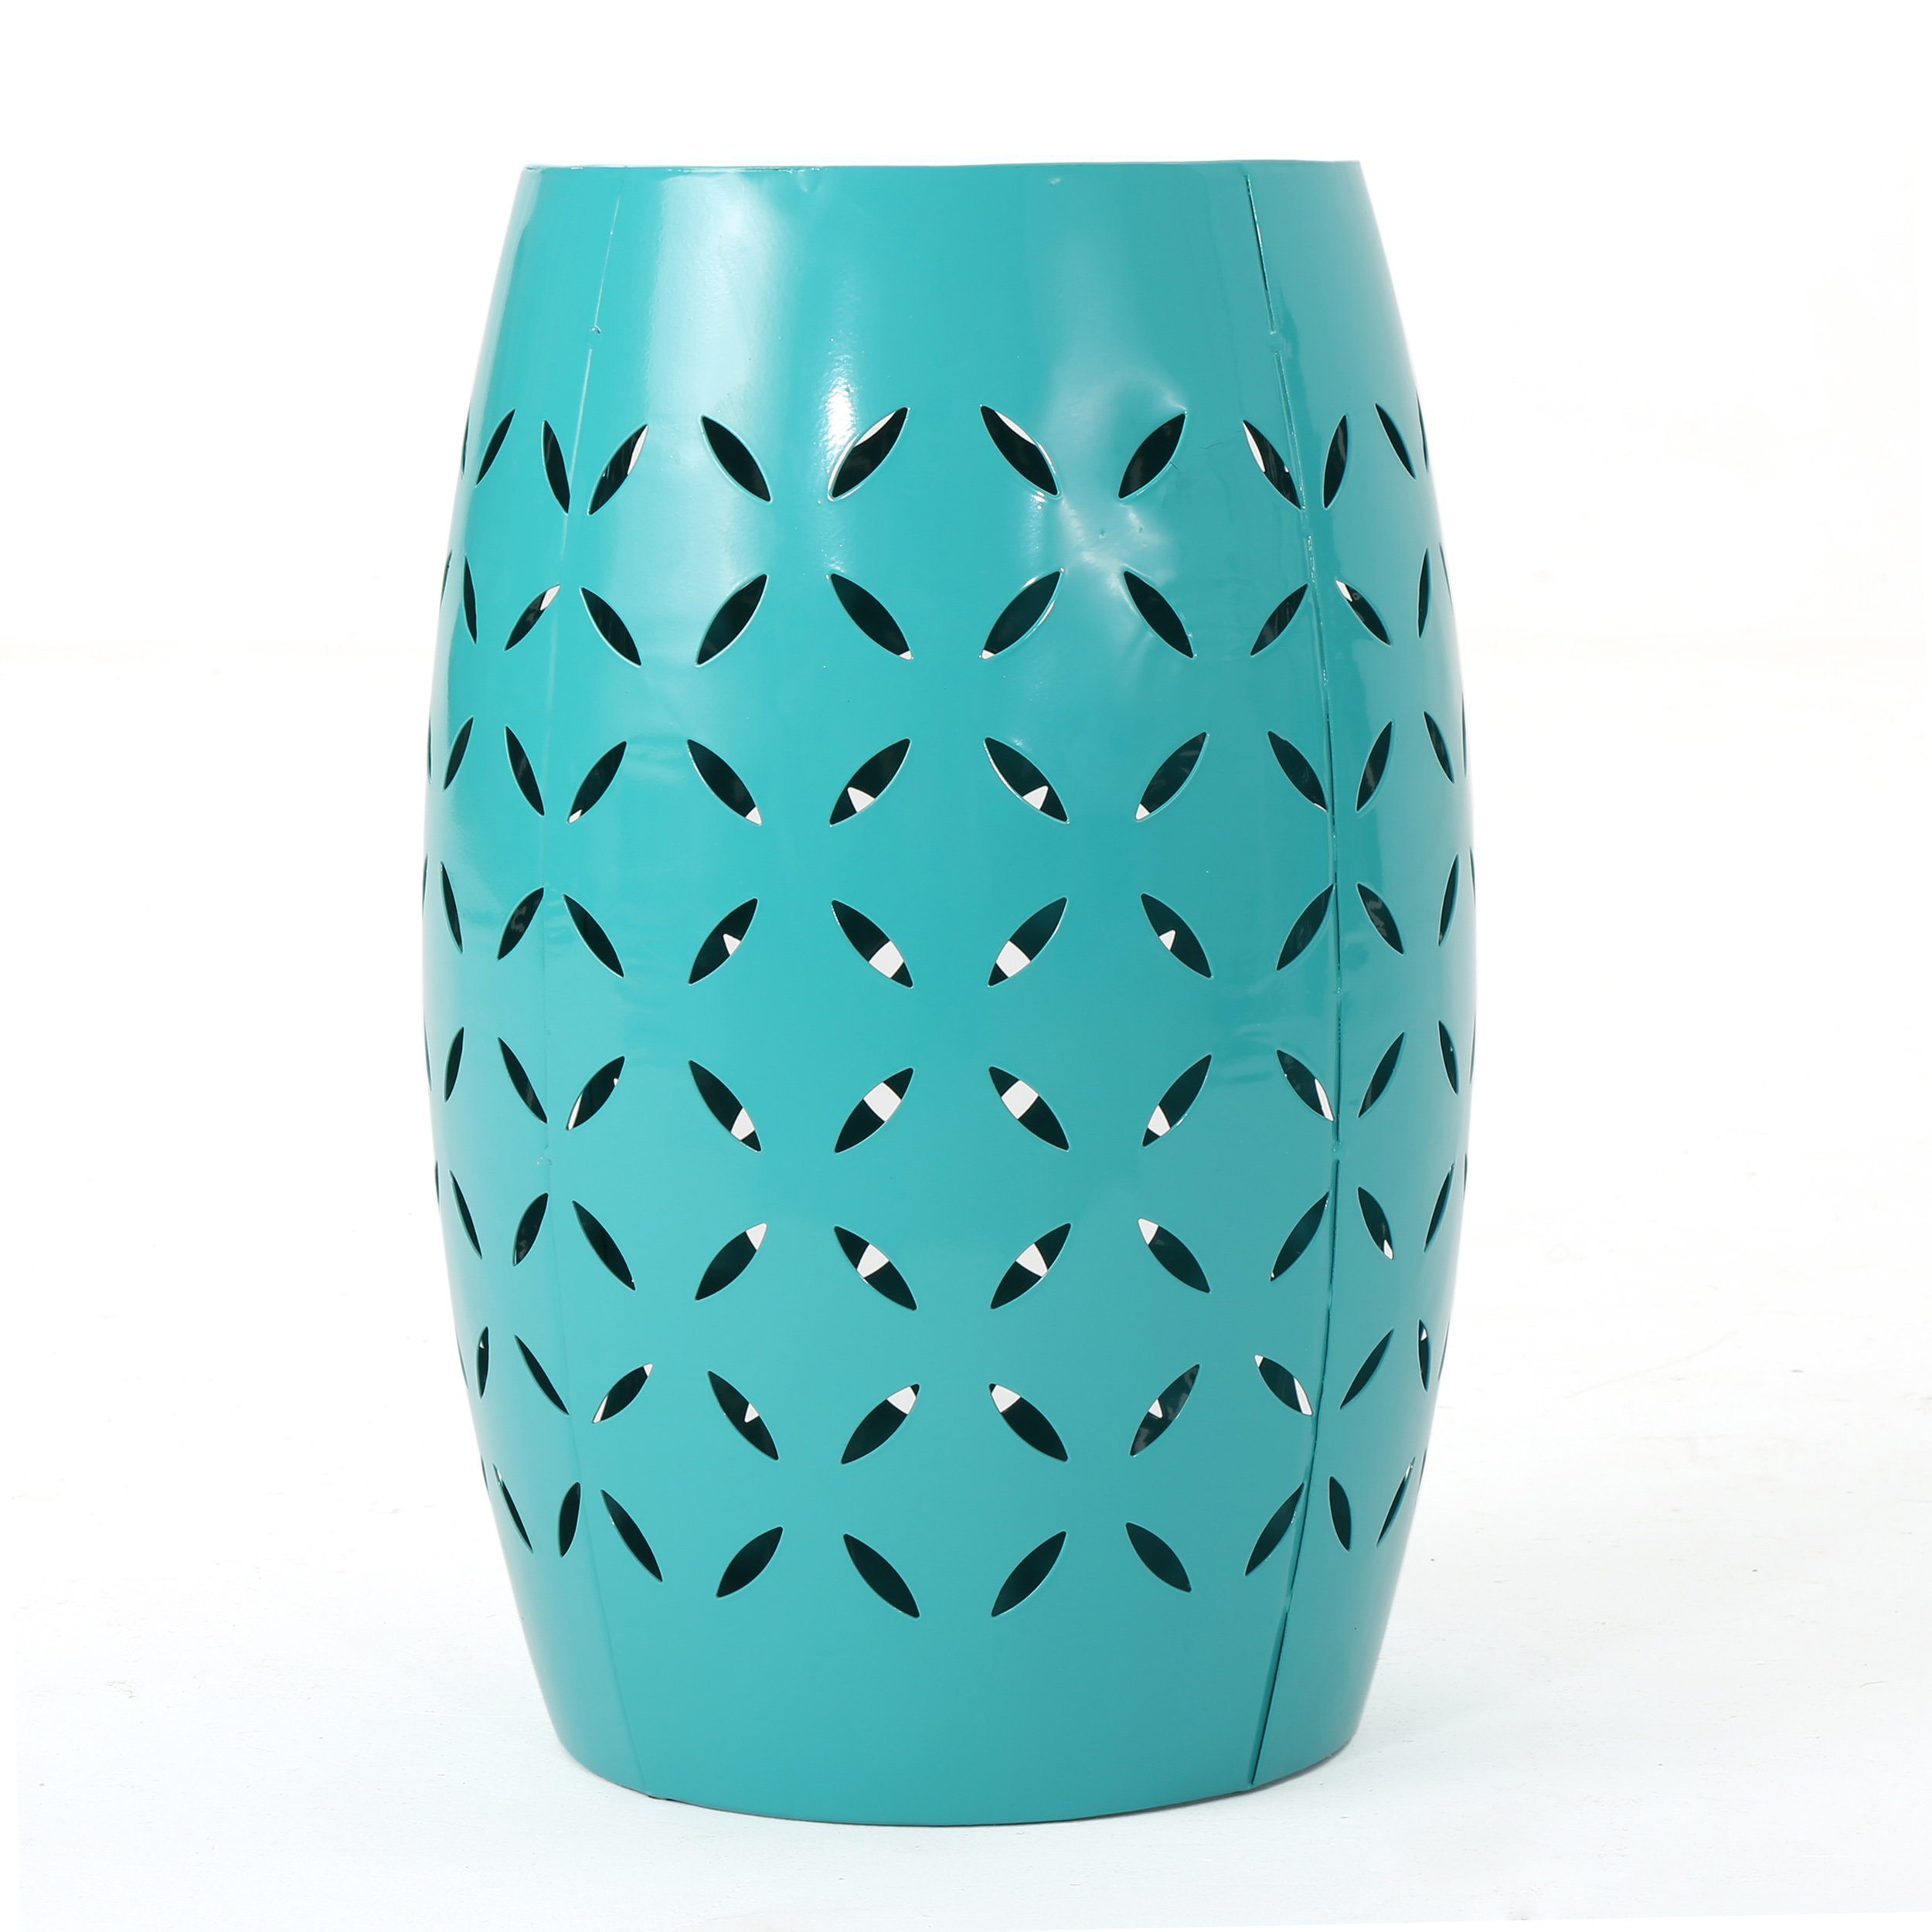 small end tables you love patchen accent table quickview collections target coffee with wheels winsome wood timber night stand turquoise chair dark blue bronze patio side mahogany